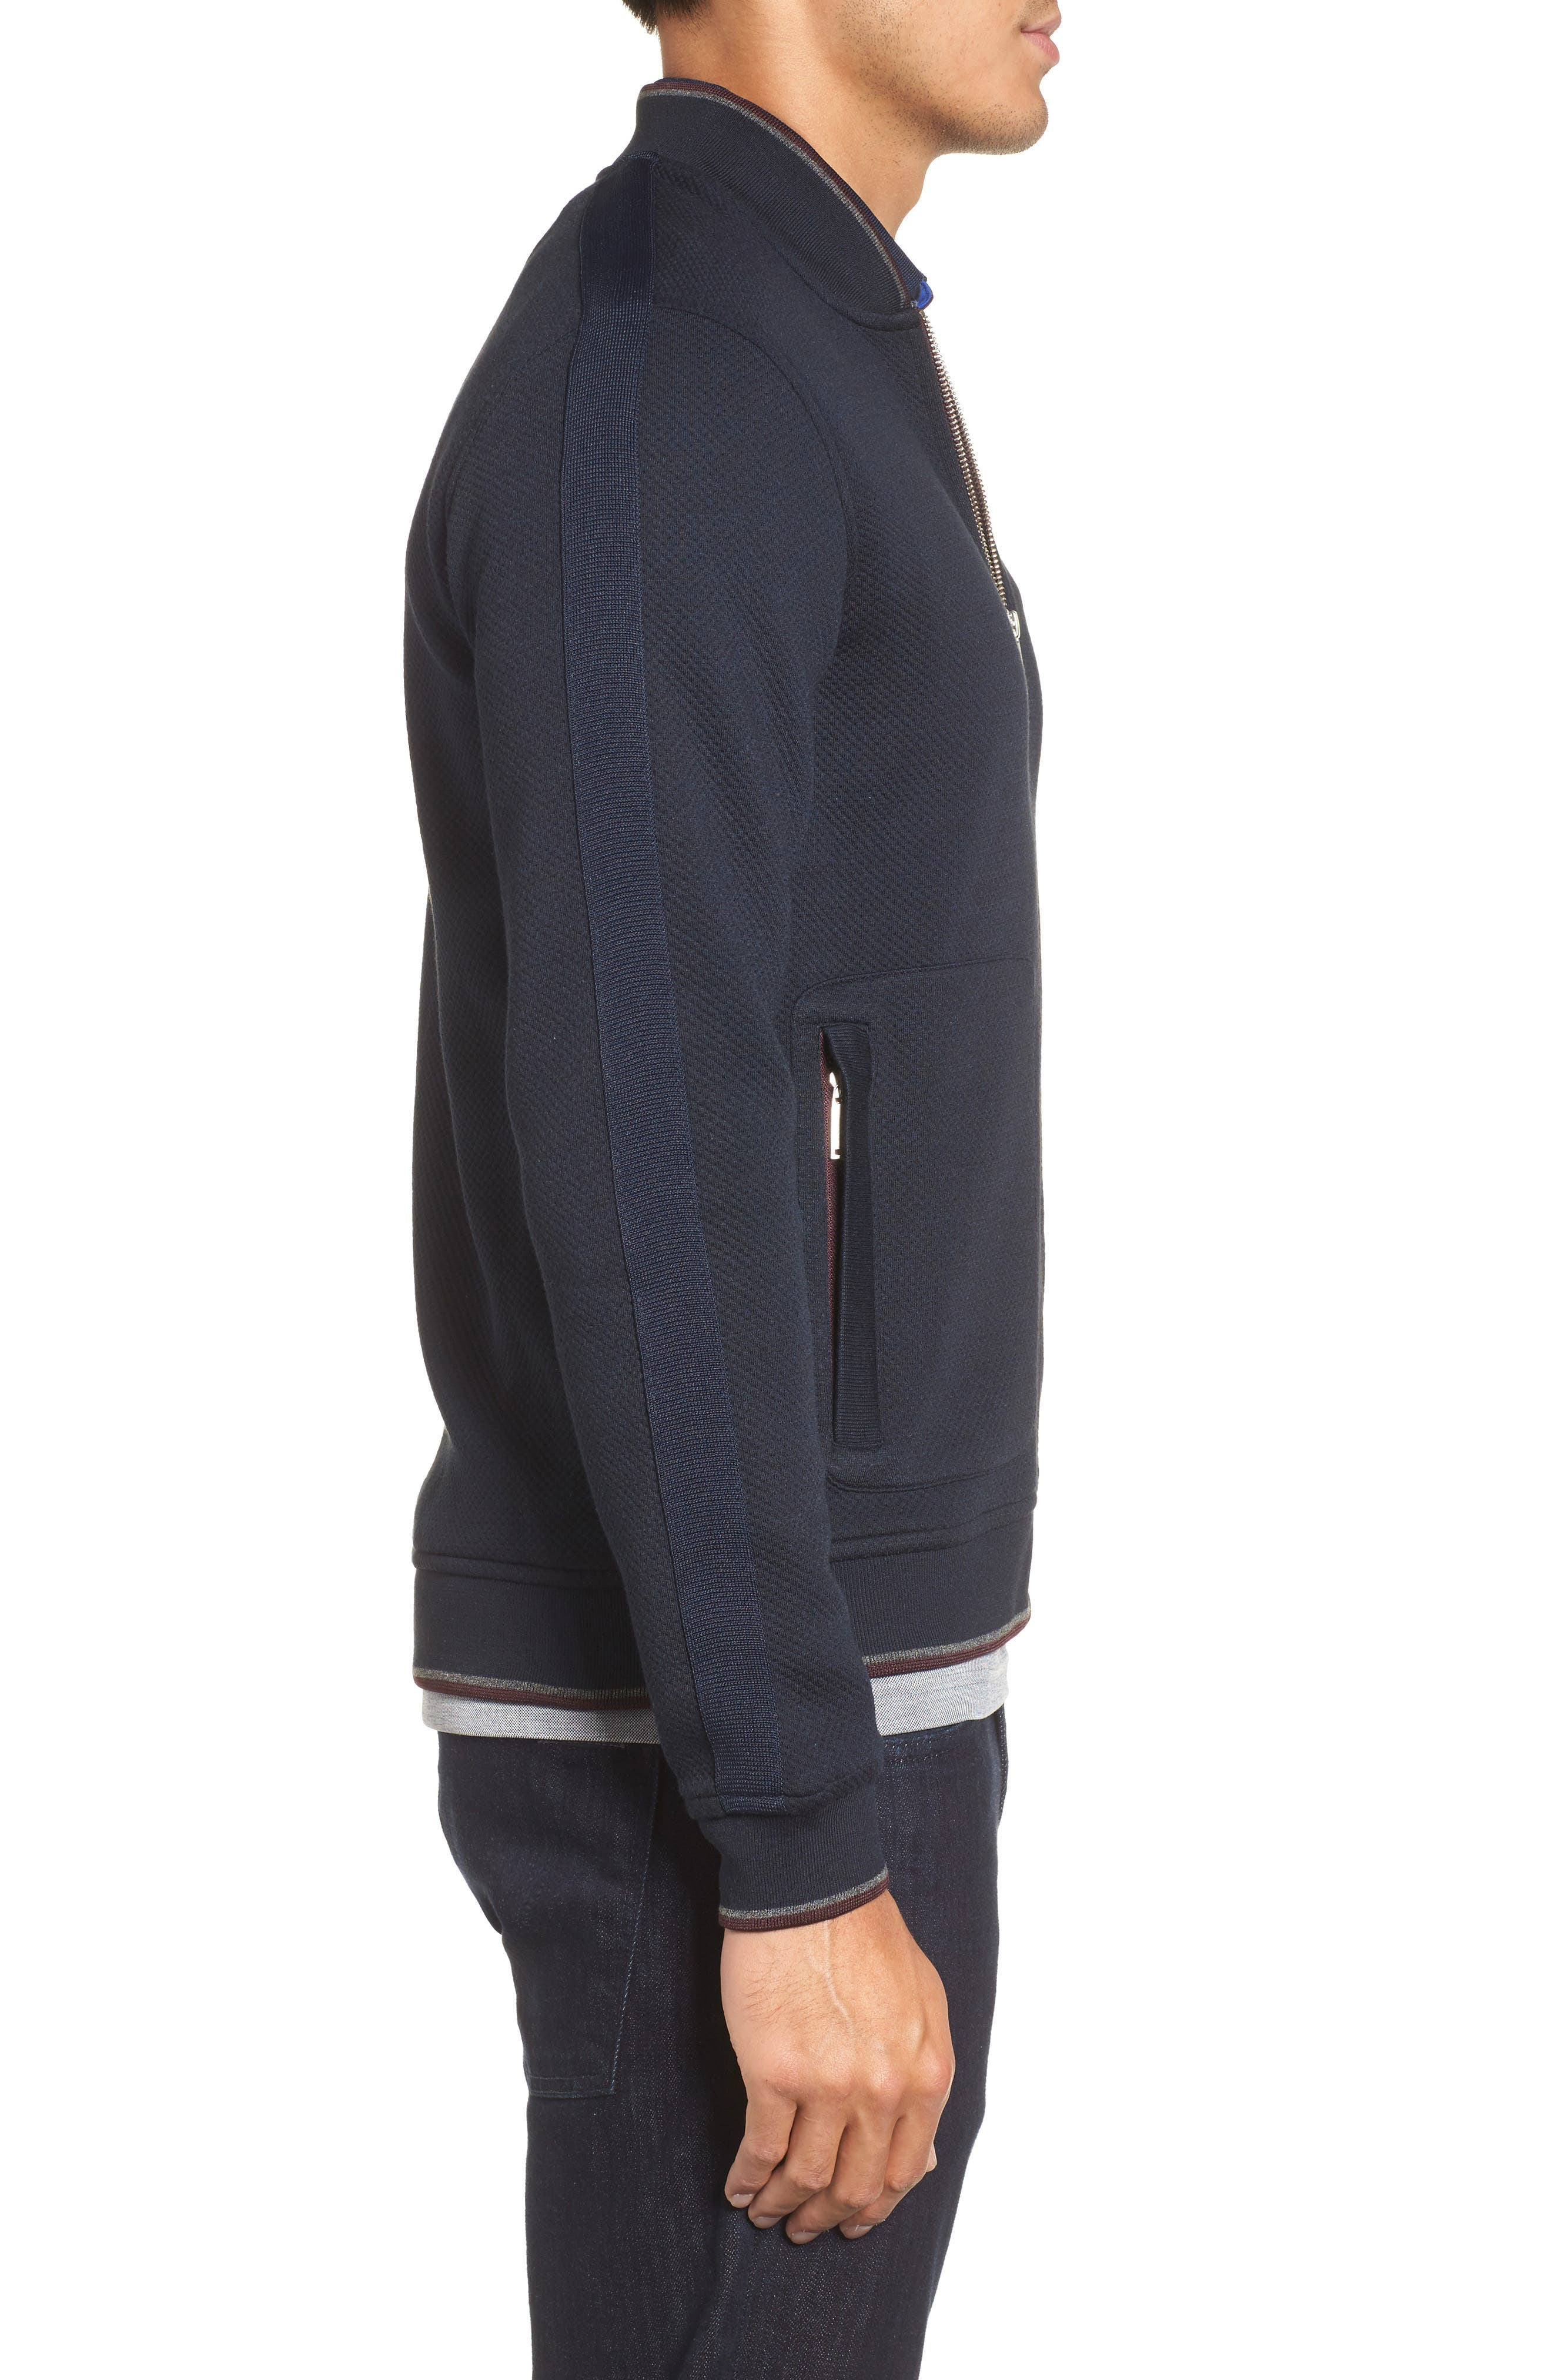 Whatts Trim Fit Textured Bomber Jacket,                             Alternate thumbnail 3, color,                             Navy